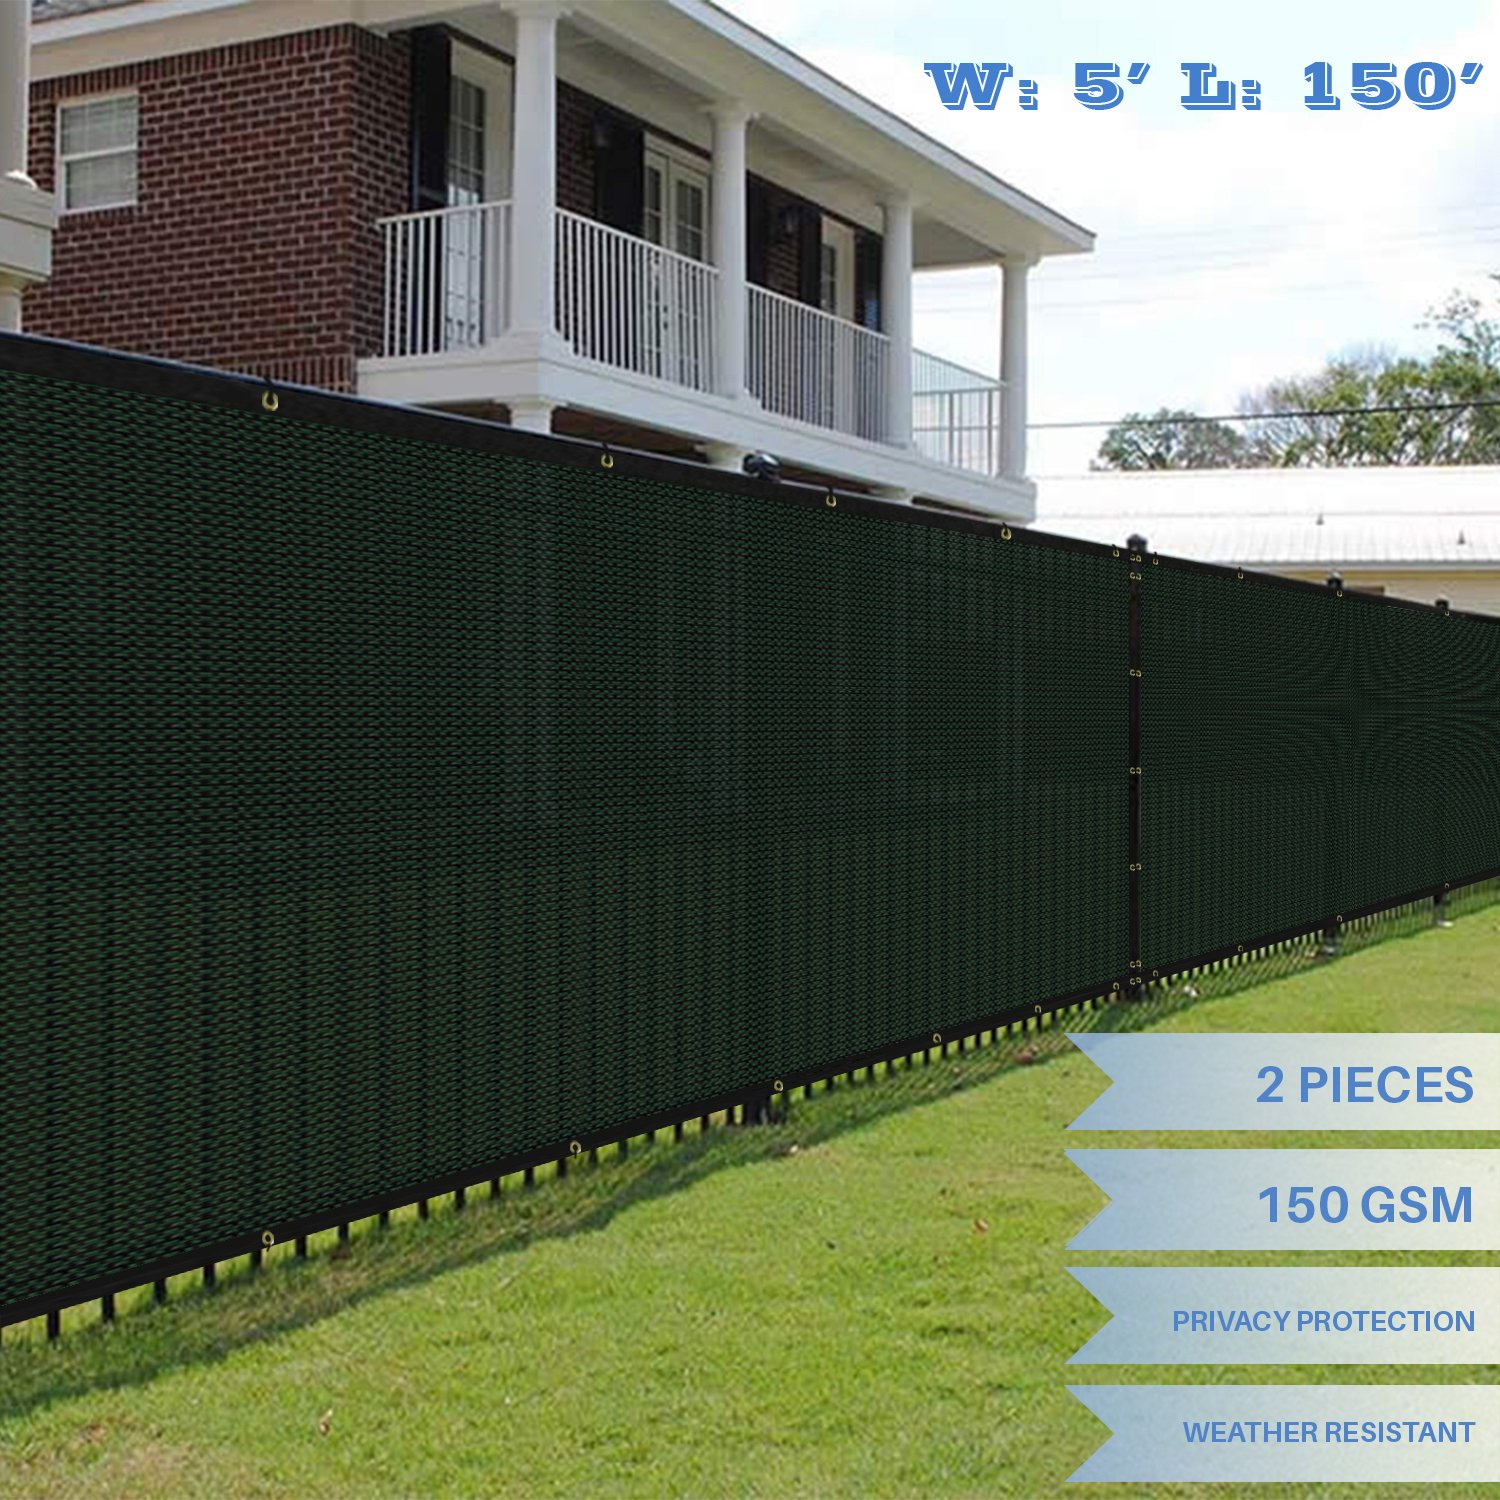 E&K Sunrise 5' x 150' Green Fence Privacy Screen, Commercial Outdoor Backyard Shade Windscreen Mesh Fabric 3 Years Warranty (Customized Sizes Available) - Set of 2